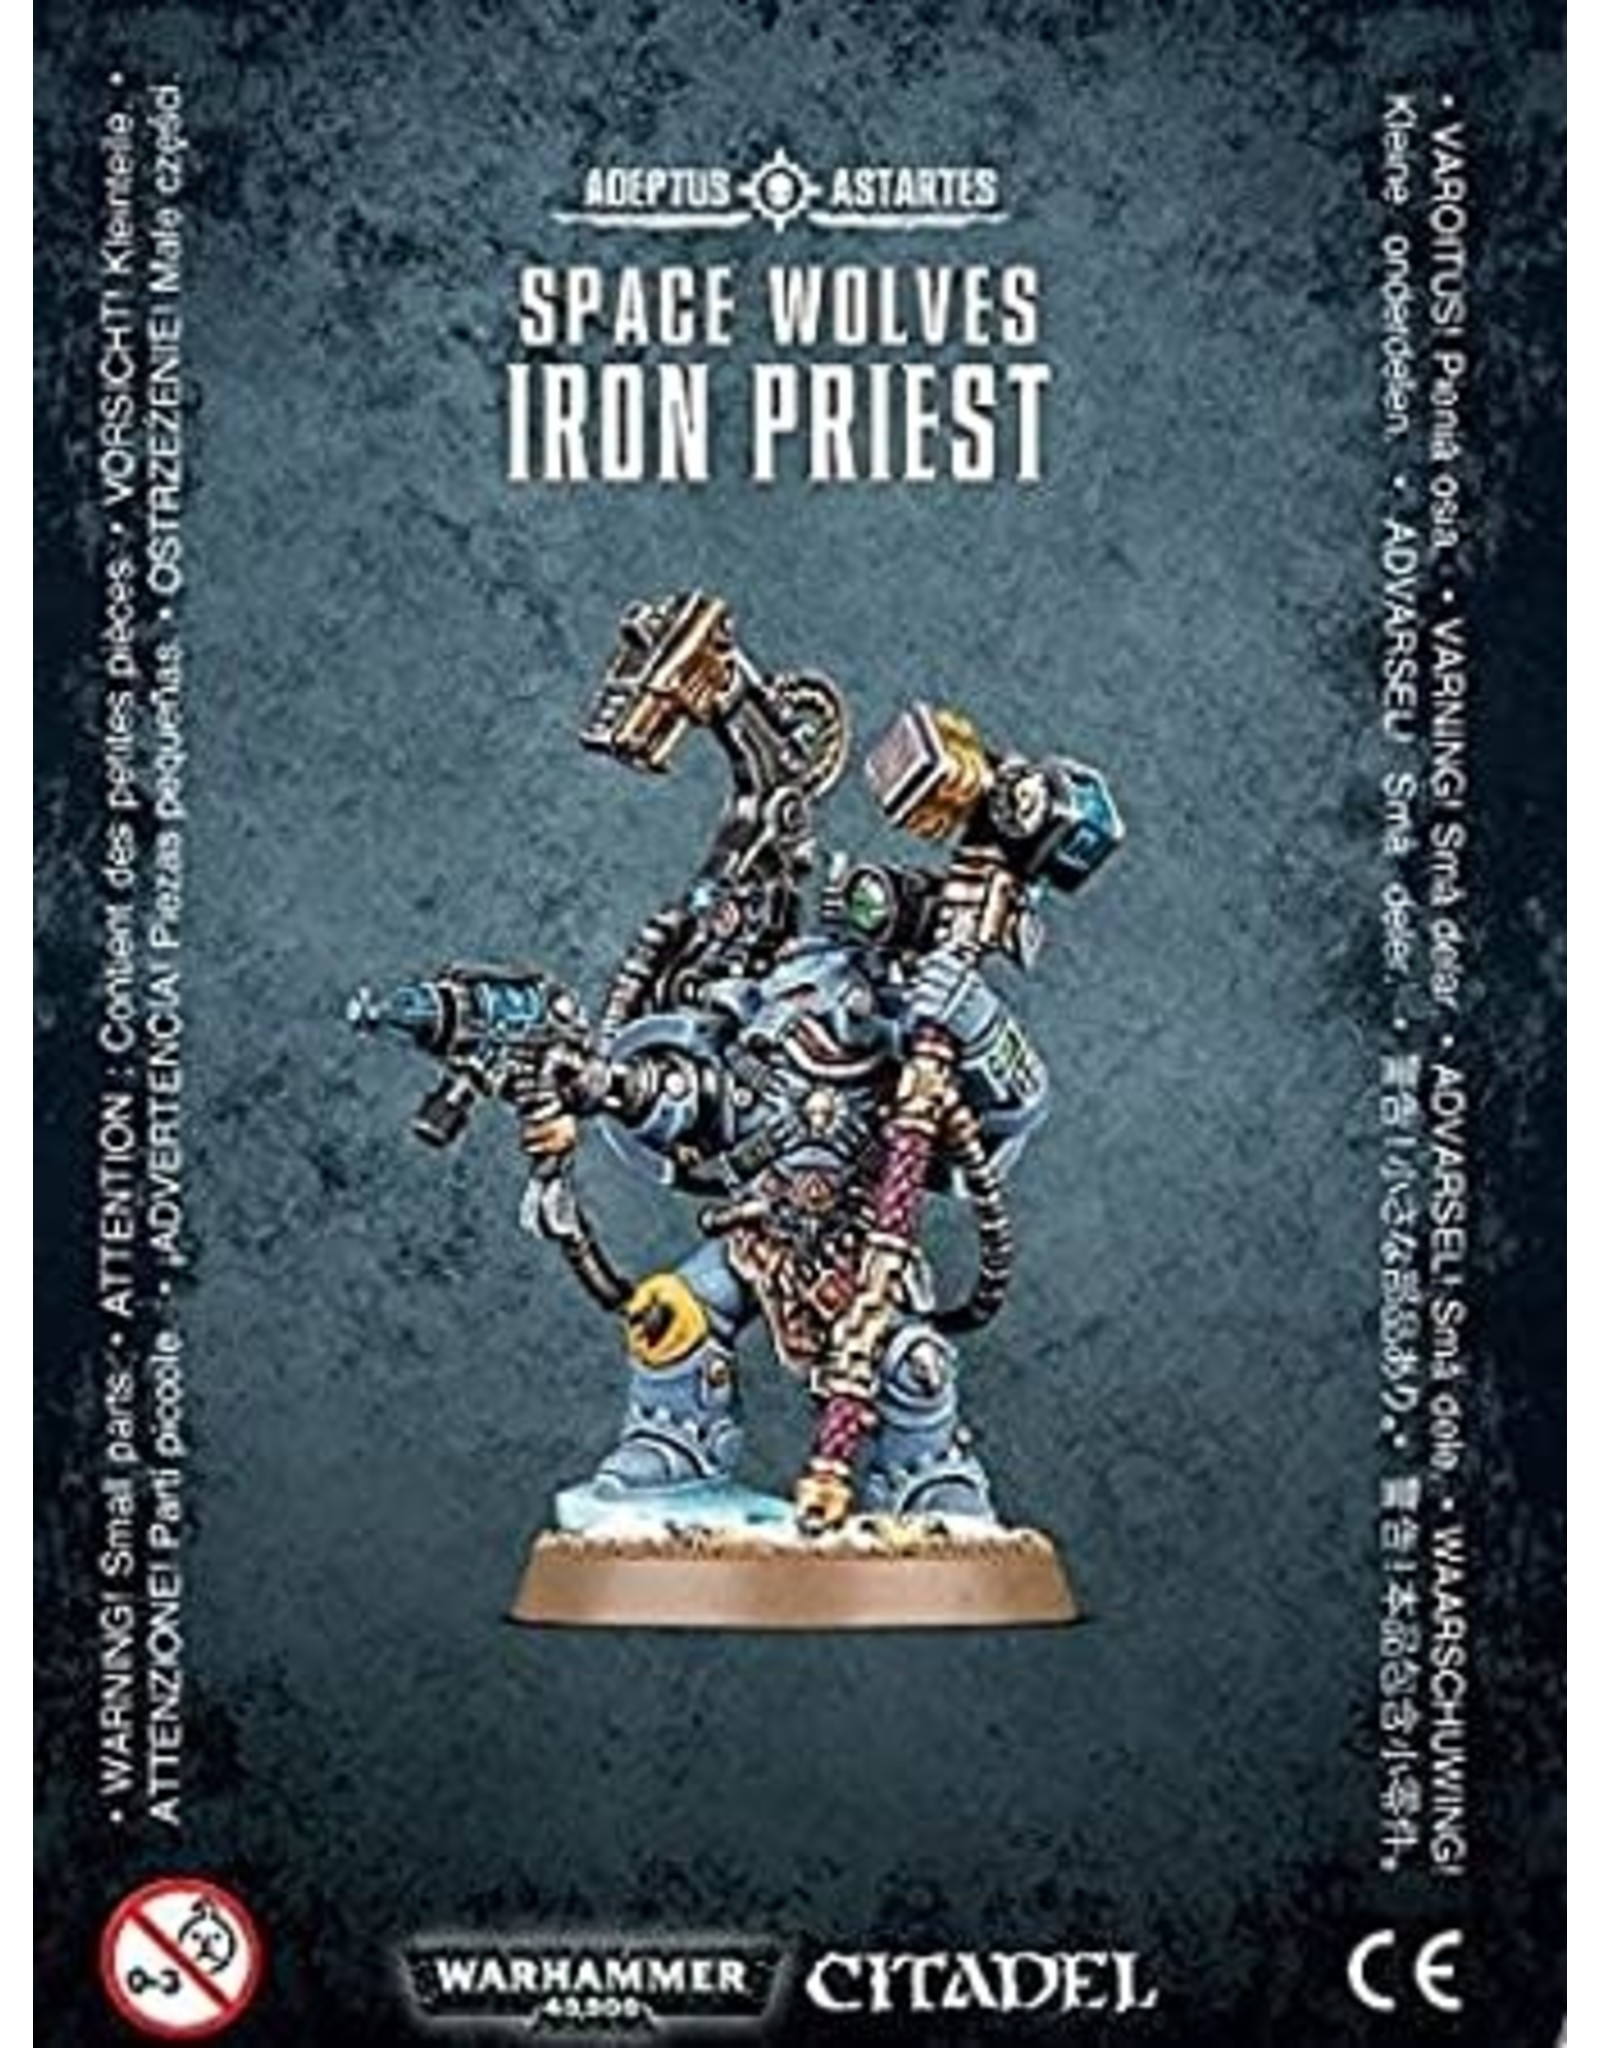 Warhammer 40,000 Space Wolves: Iron Priest